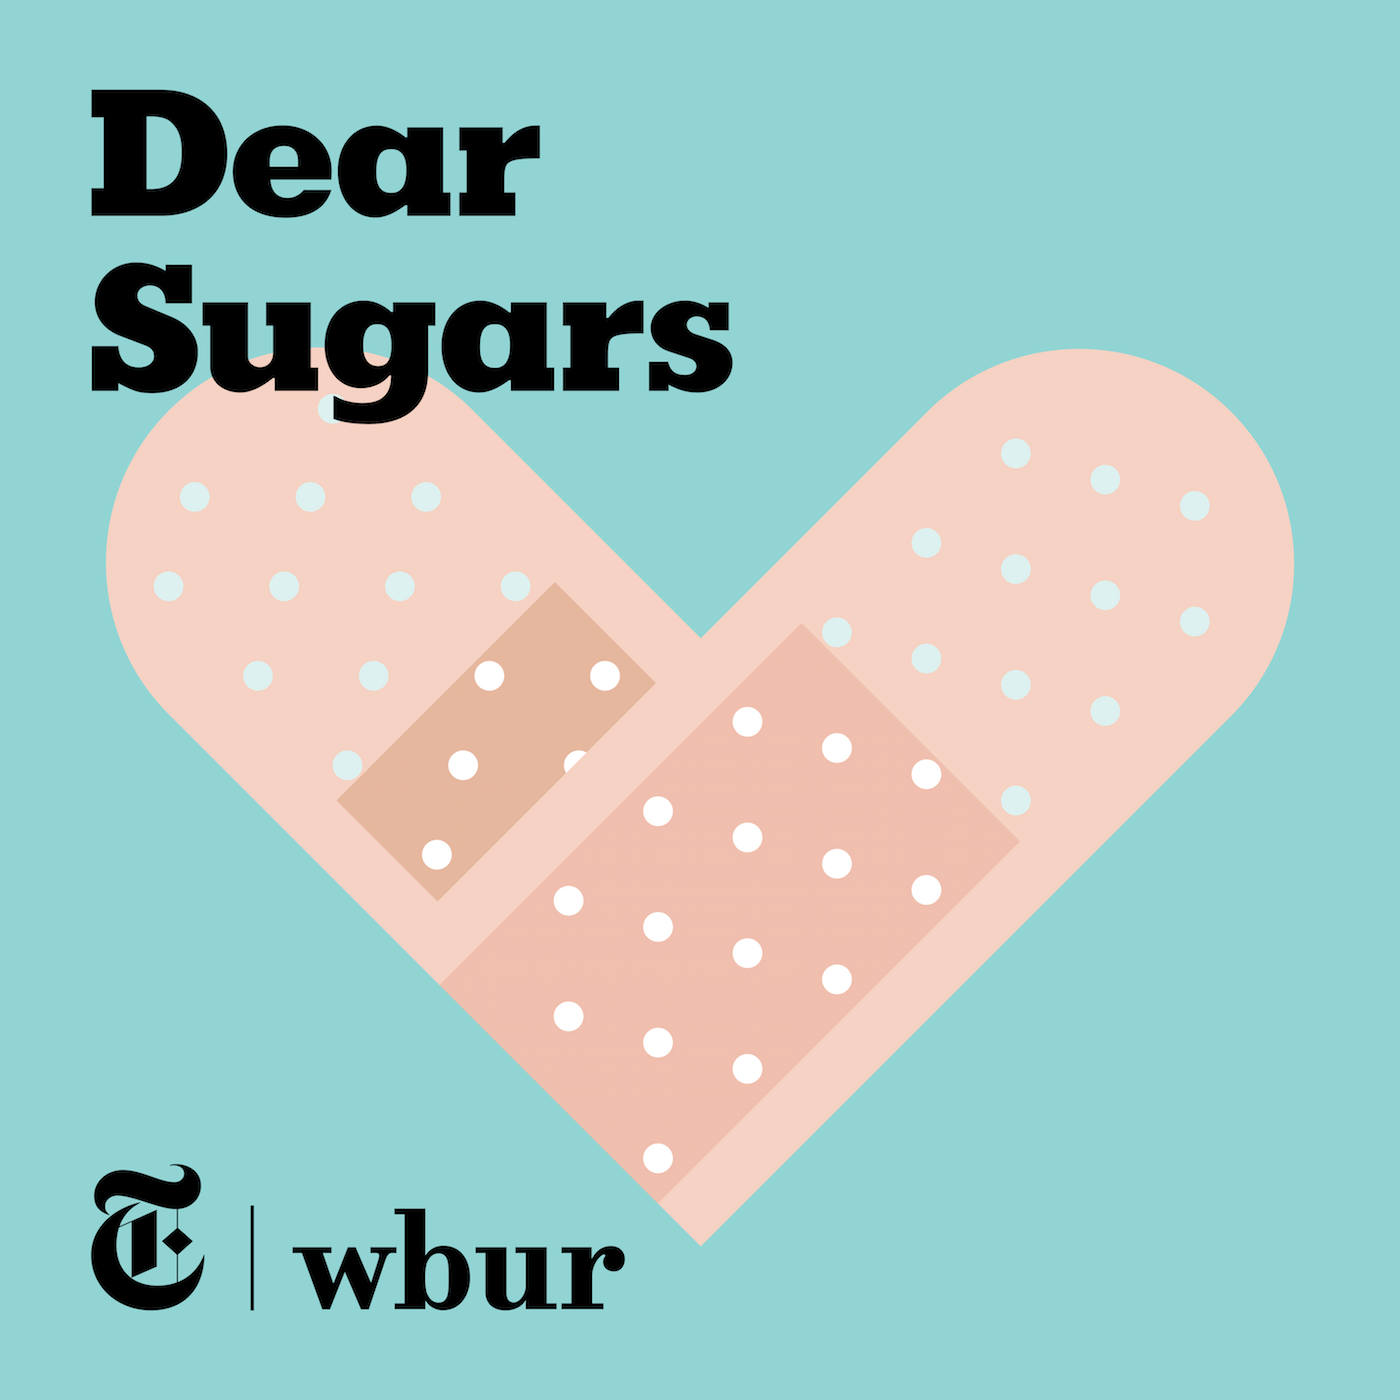 Dear Sugars - Podcasts - The New York Times